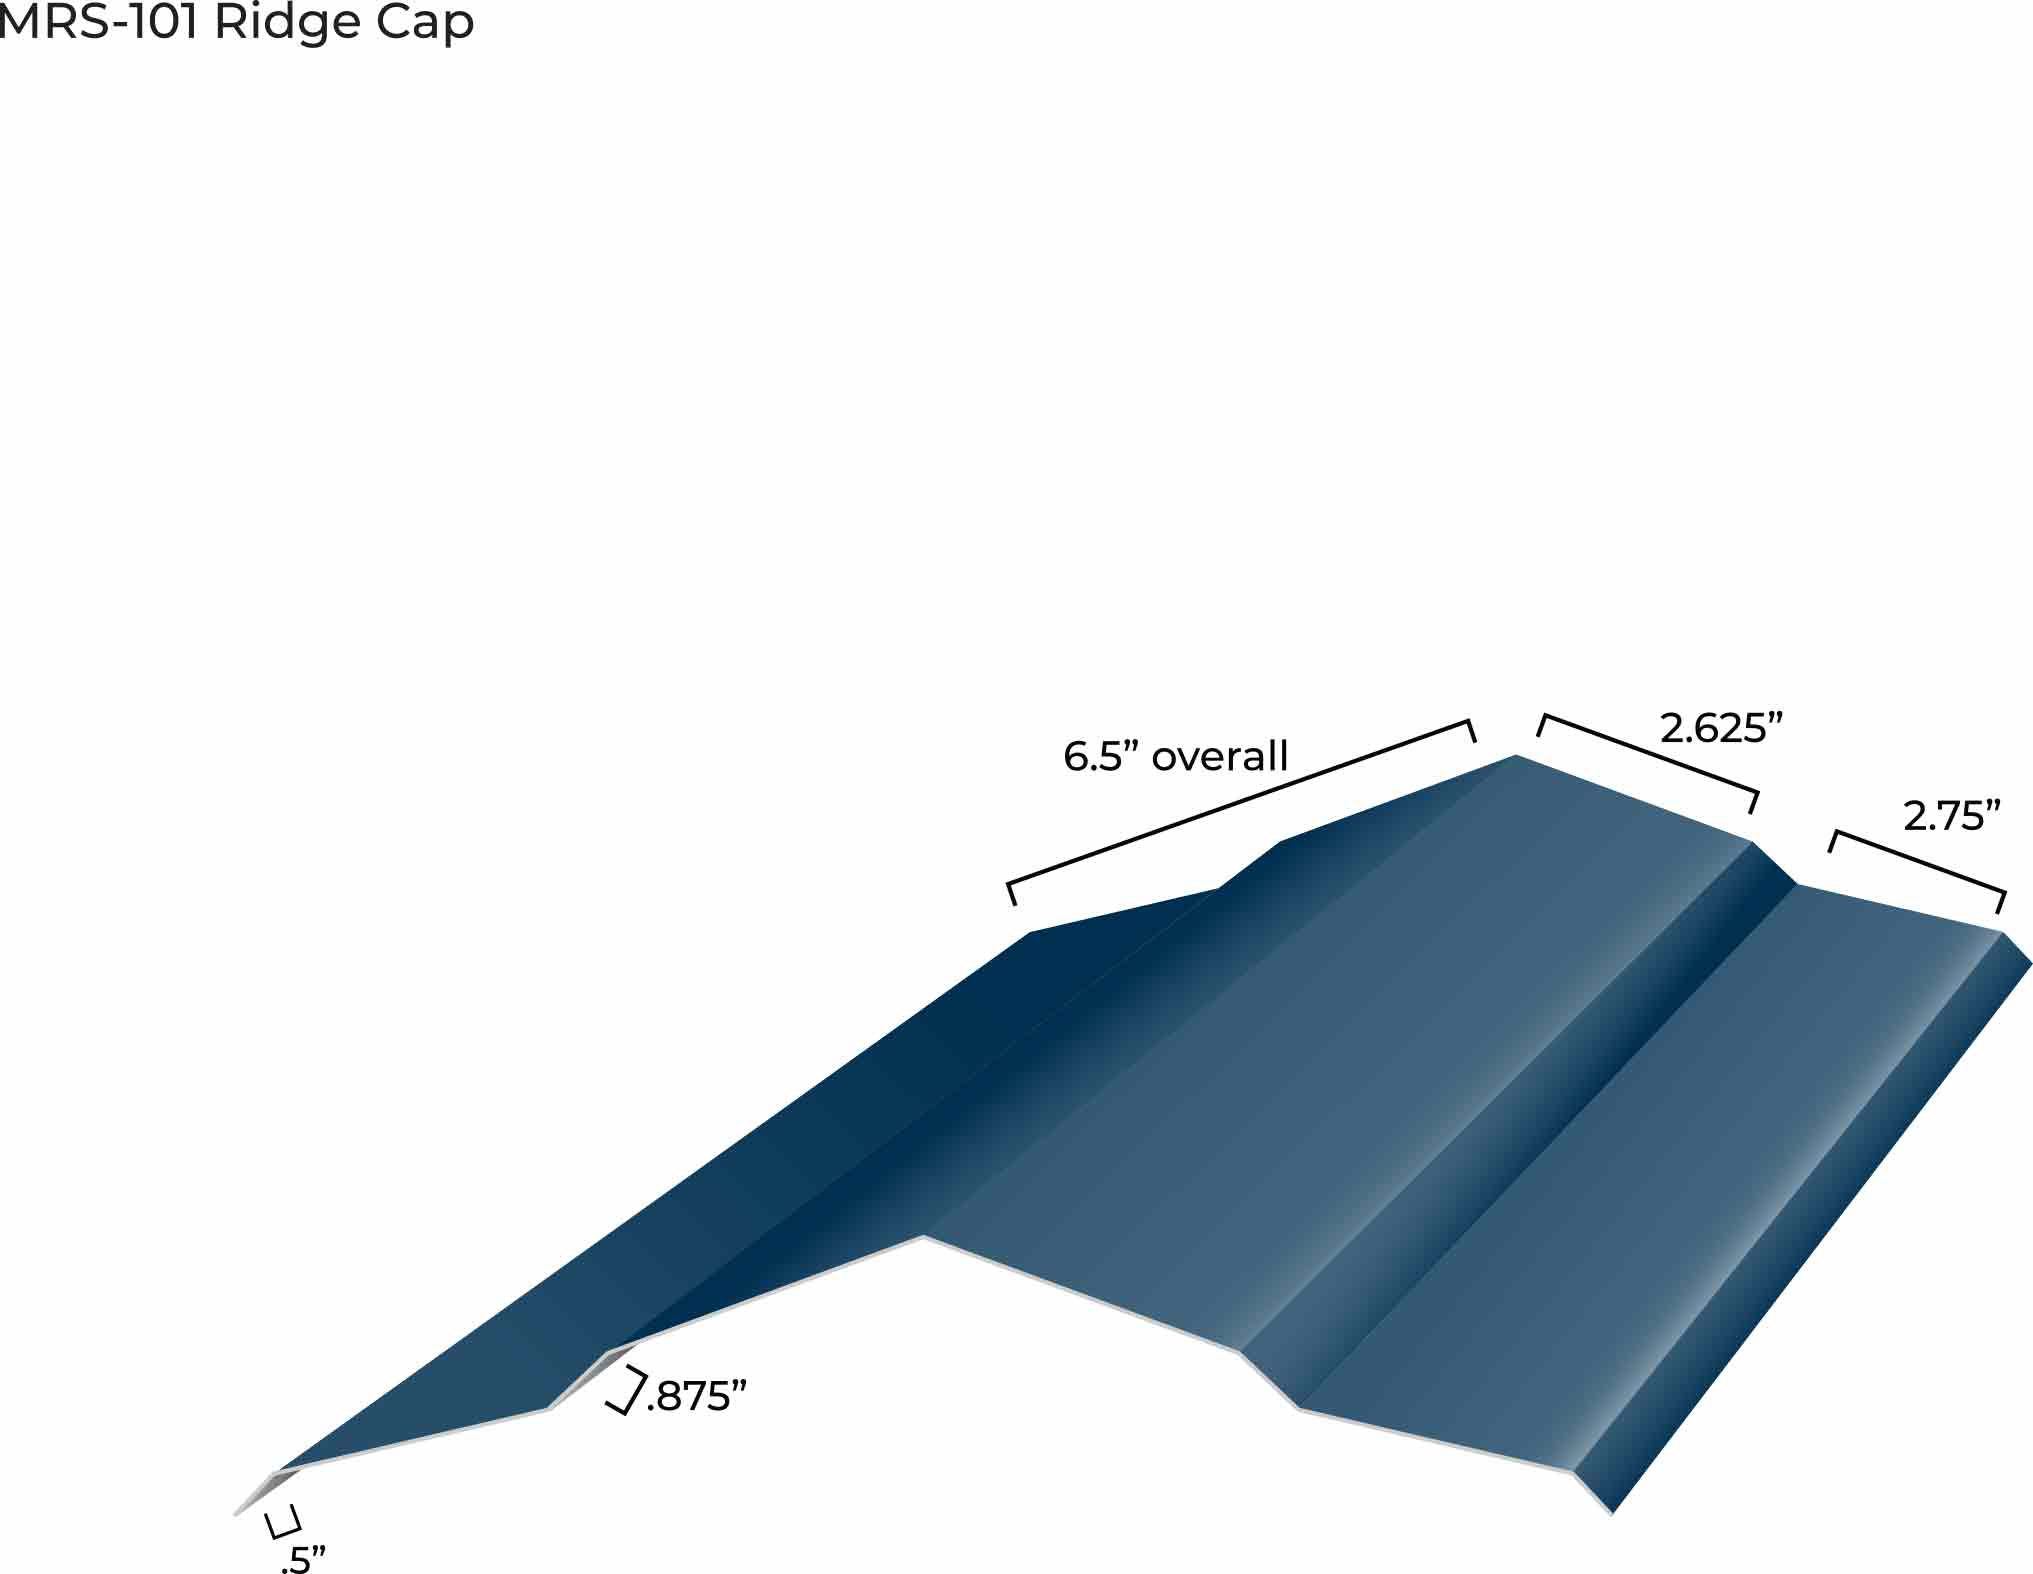 MRS-101 Ridge Cap